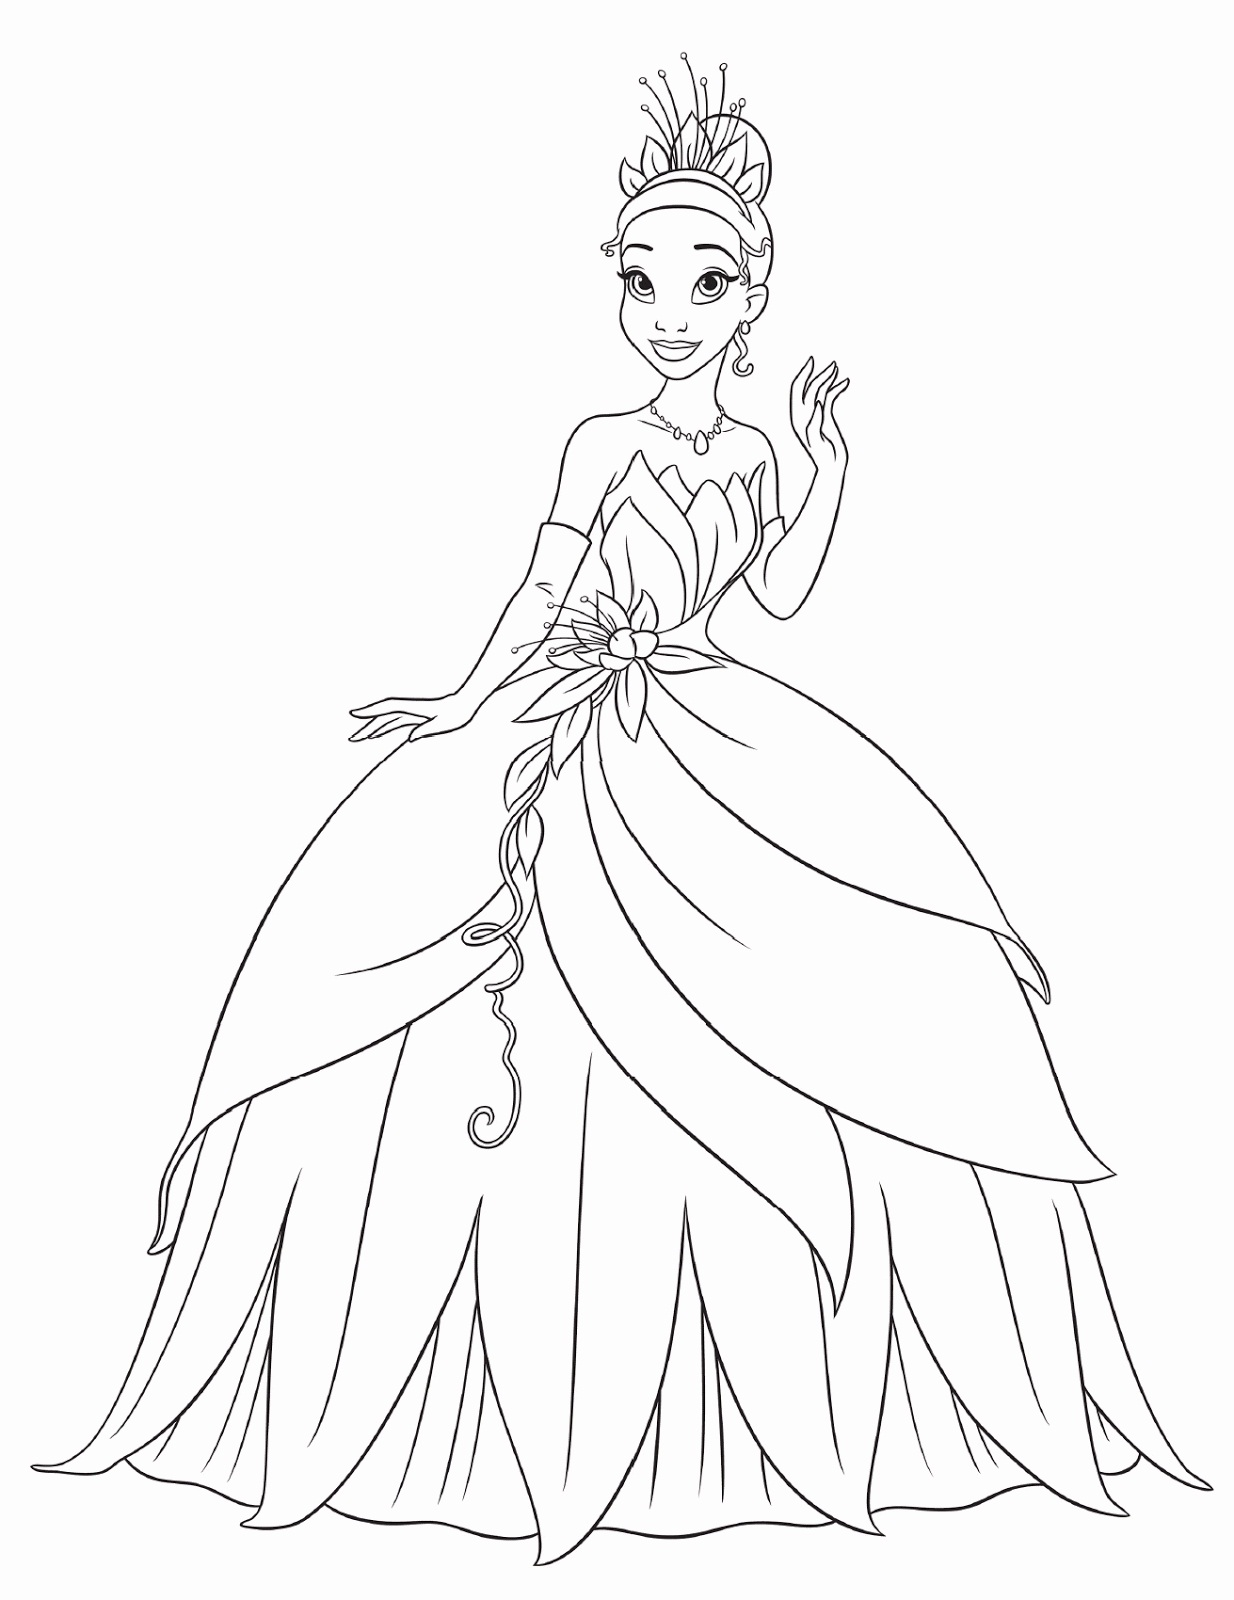 Free Printable Princess Tiana Coloring Pages For Kids Princess Coloring Pages Free Coloring Sheets